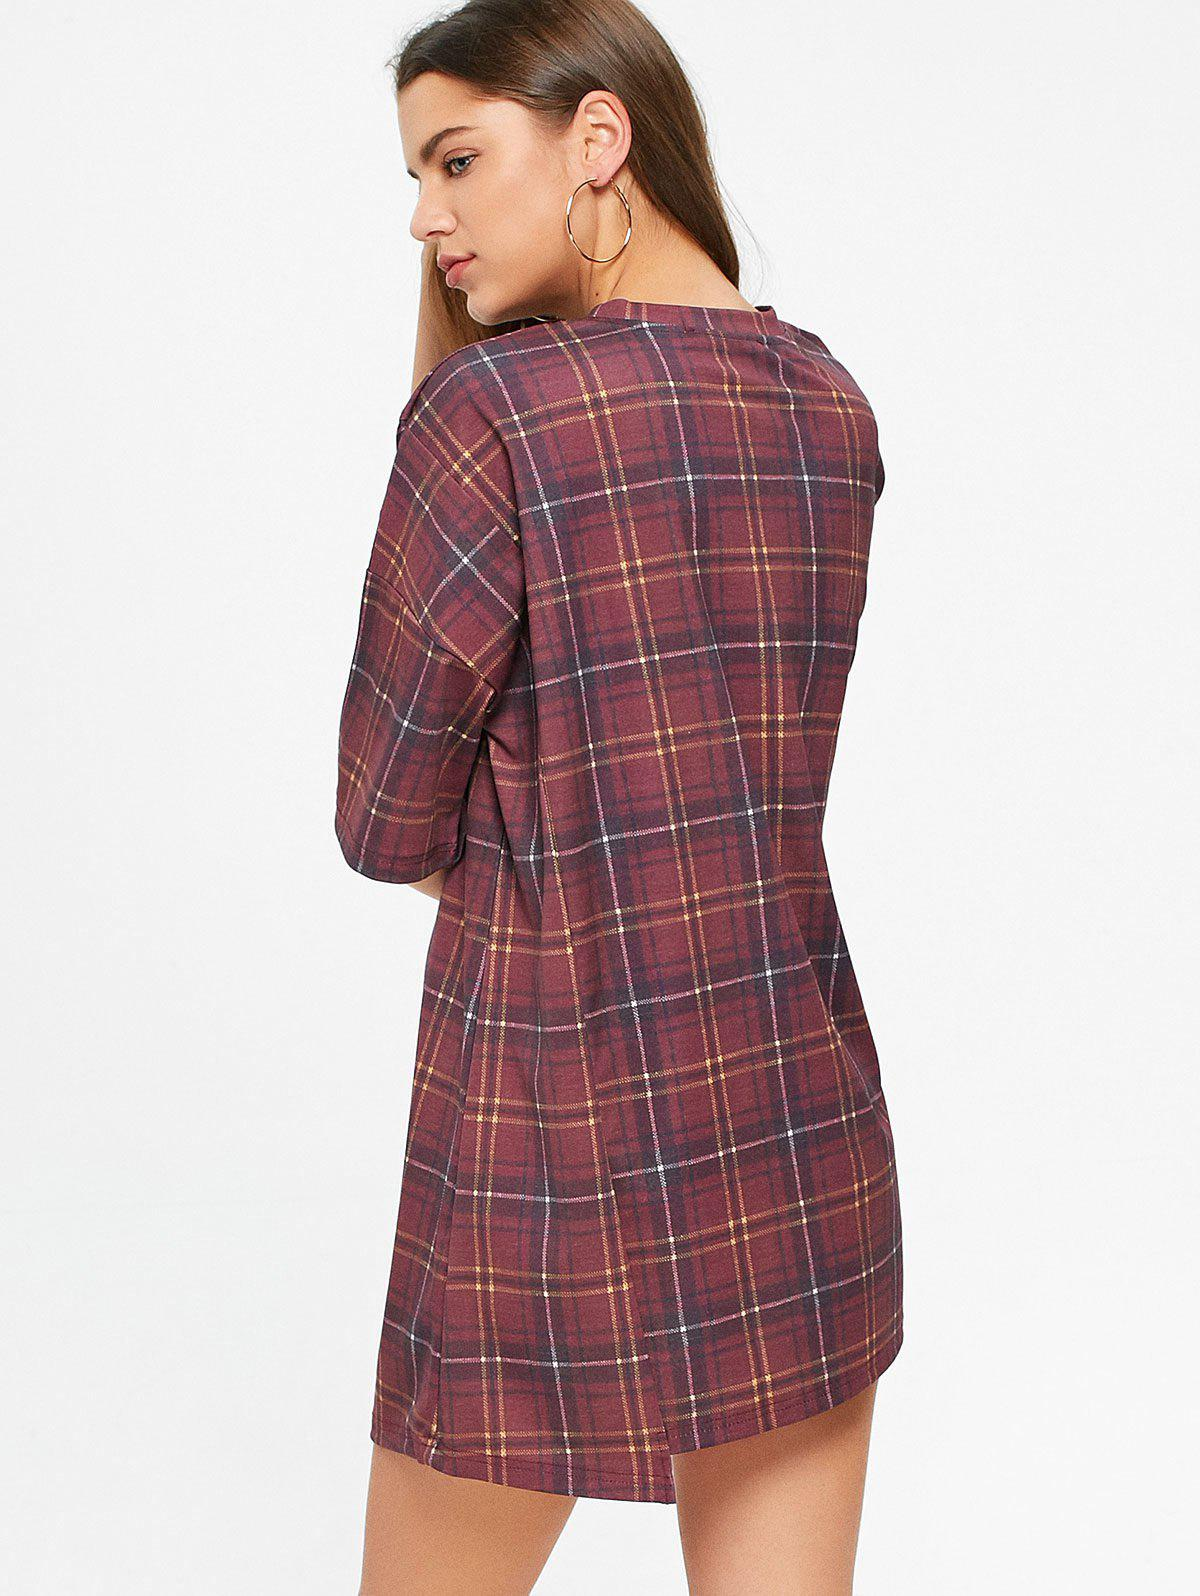 Checked Short Sleeve Shift T Shirt Dress - WINE RED L